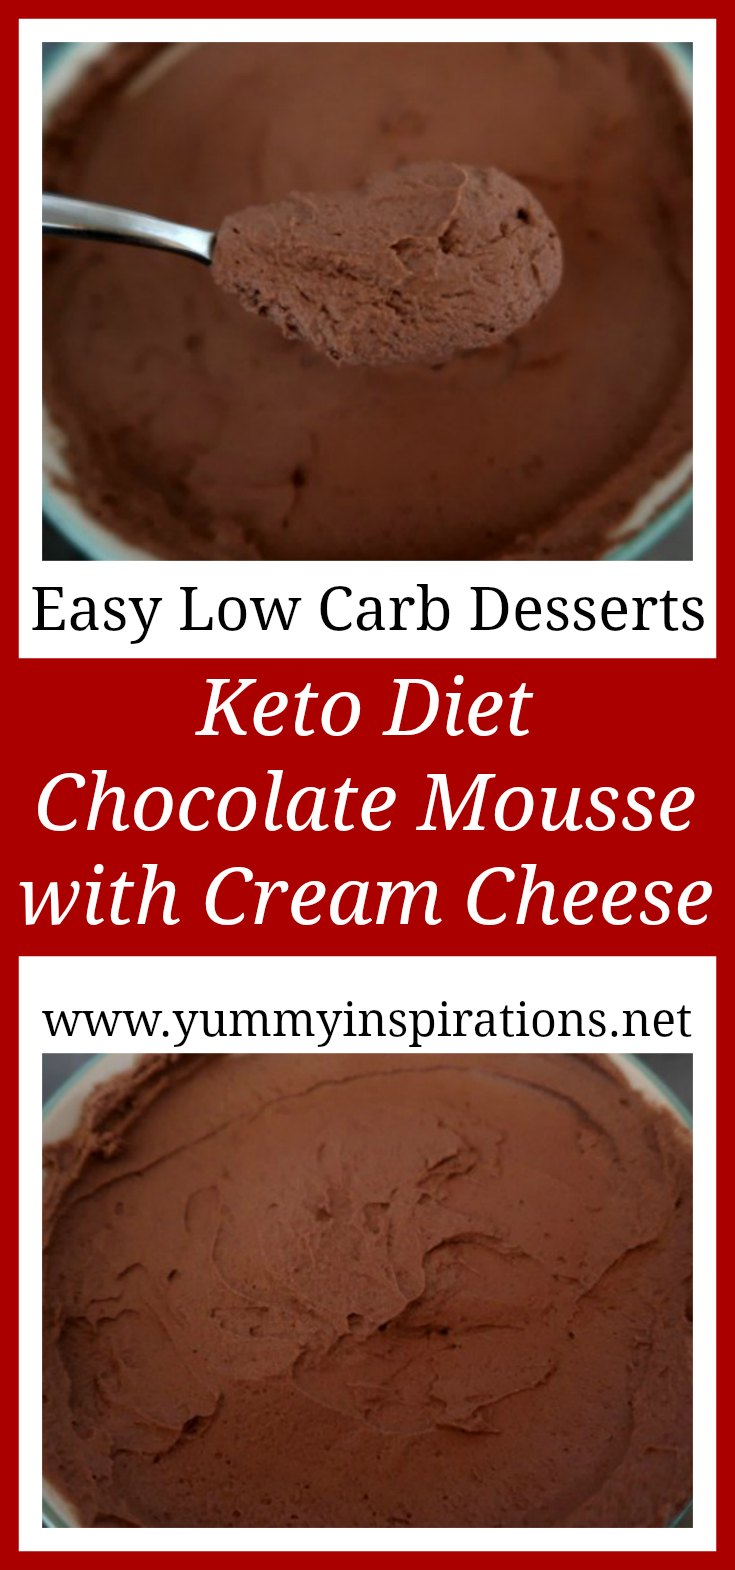 Keto Diet Chocolate Mousse With Cream Cheese Recipe - Easy Low Carb Desserts